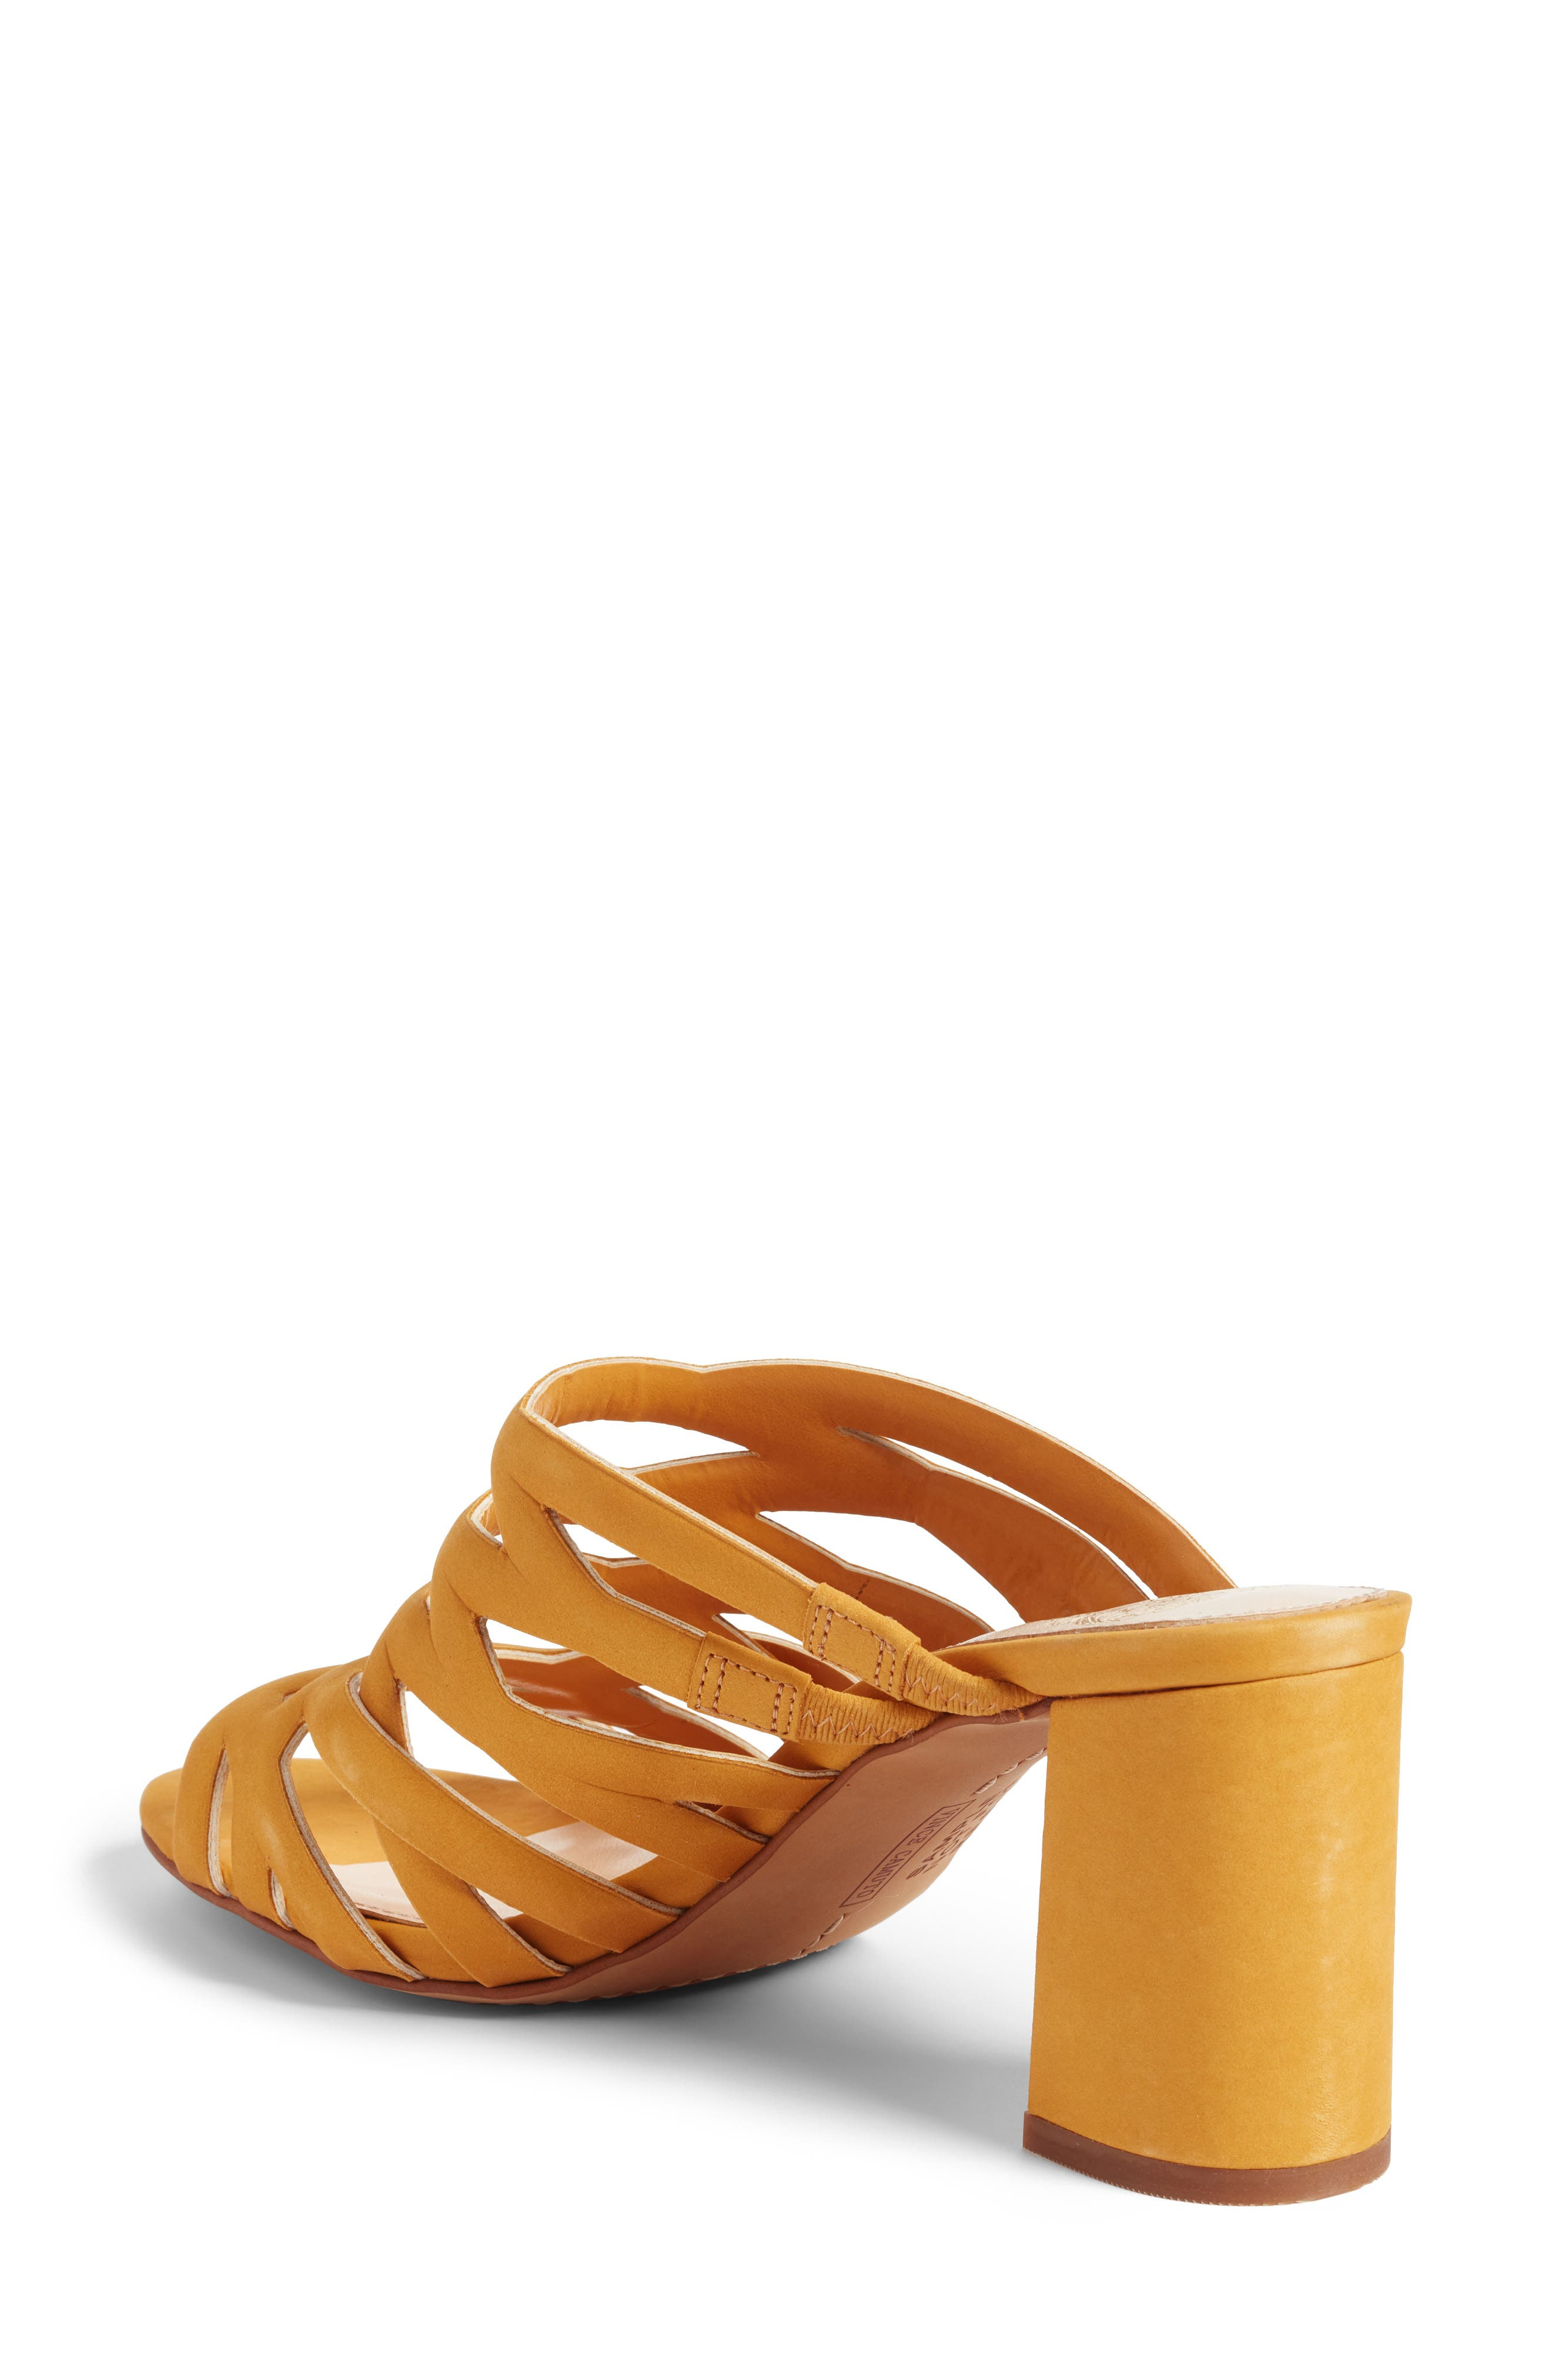 Raveana Cage Mule,                             Alternate thumbnail 2, color,                             MUSTARD YELLOW LEATHER